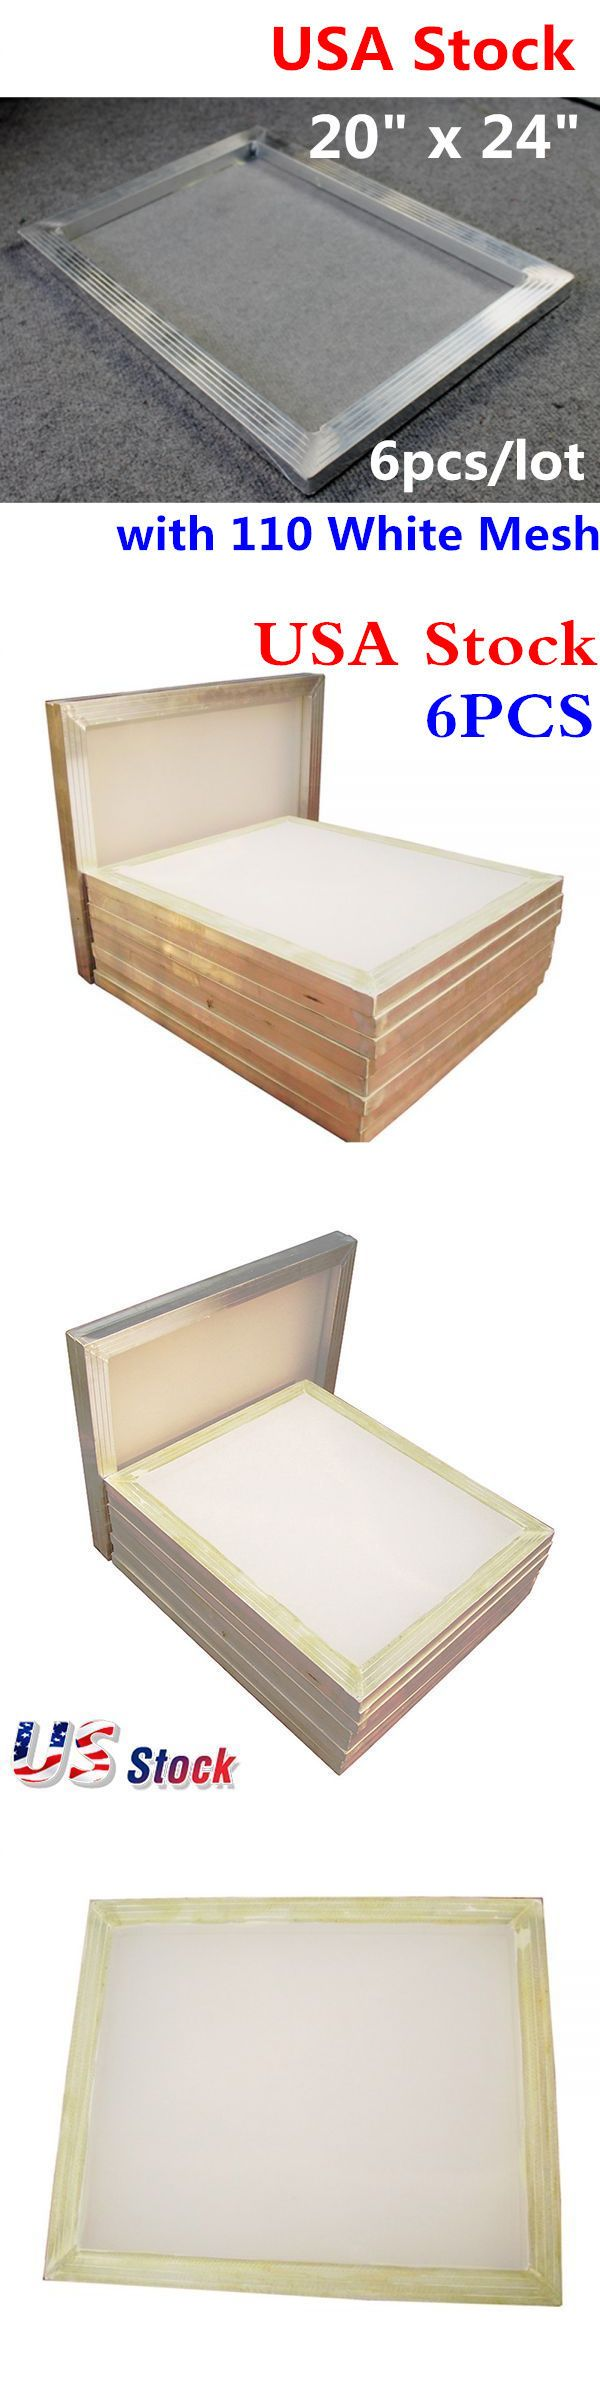 Screen Printing Frames 183114: Us Stock! 6 Pcs Lot- 20X24 Inch Aluminum Screen With 110 White Mesh -> BUY IT NOW ONLY: $82.77 on eBay!